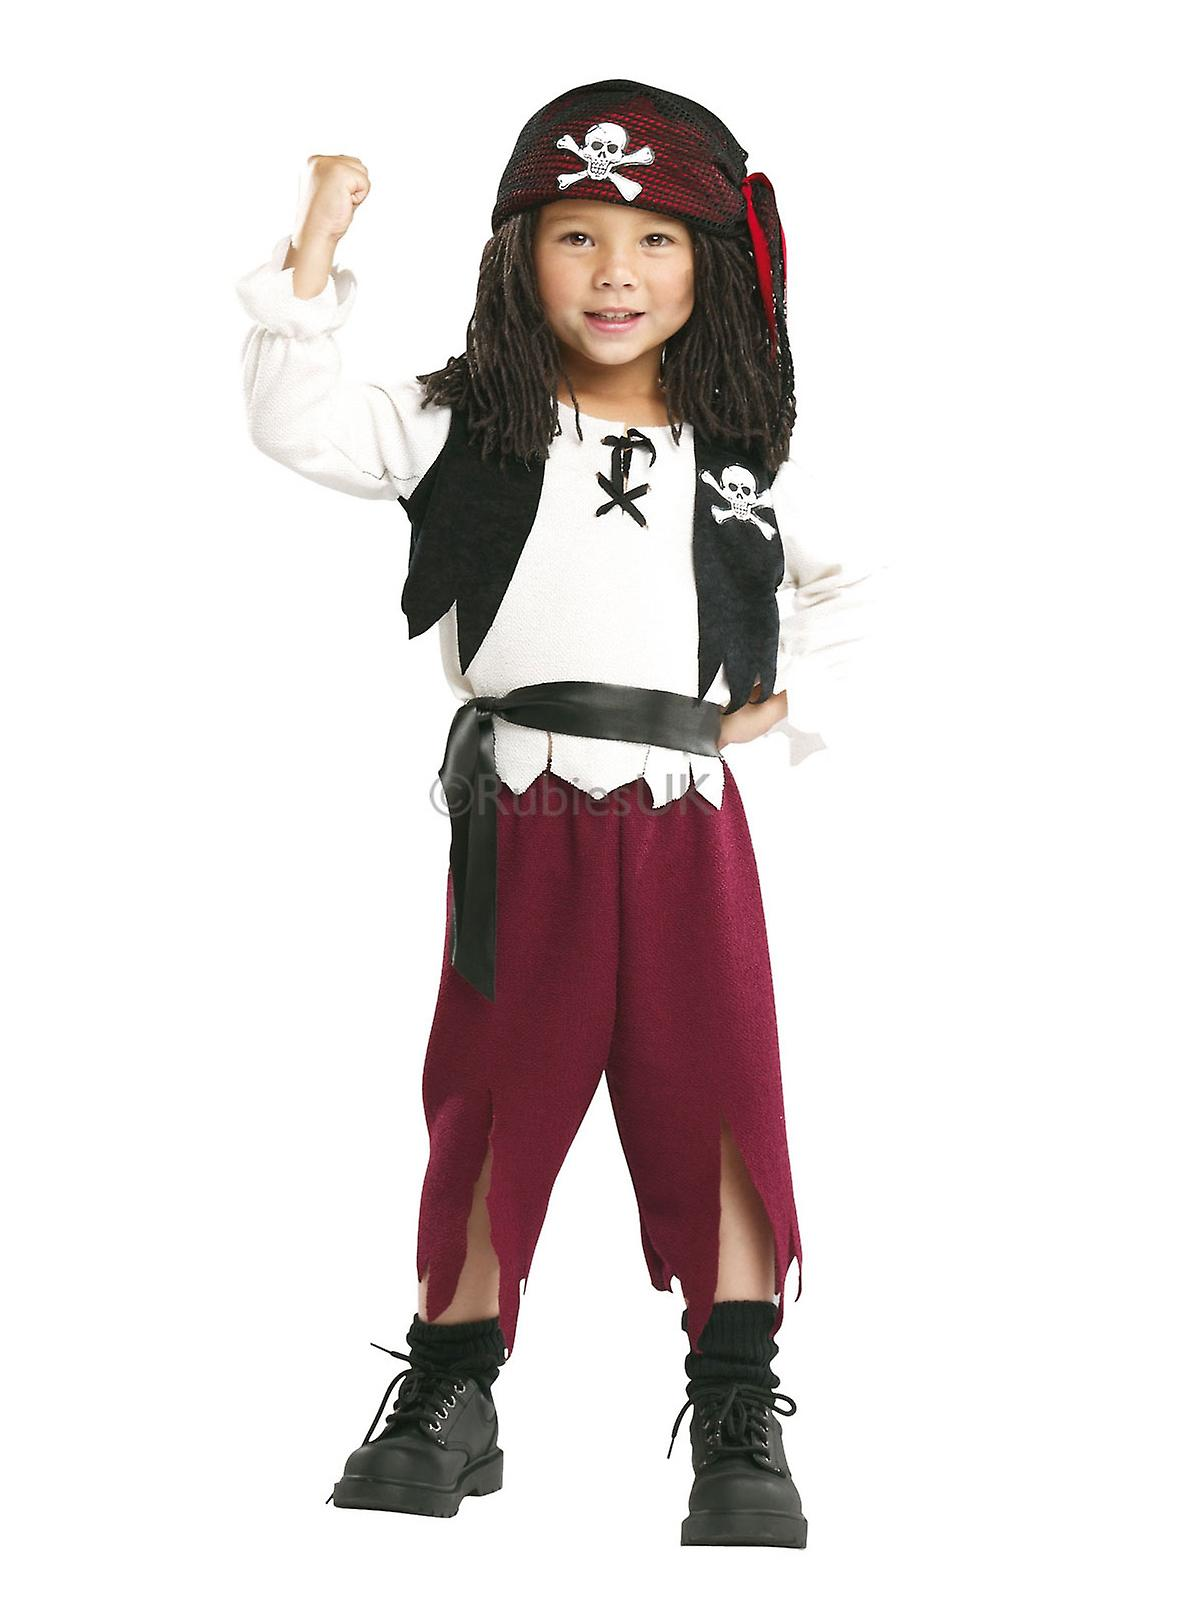 Pirate Captain Cutthroat Swashbuckler Carribean Buccaneer To